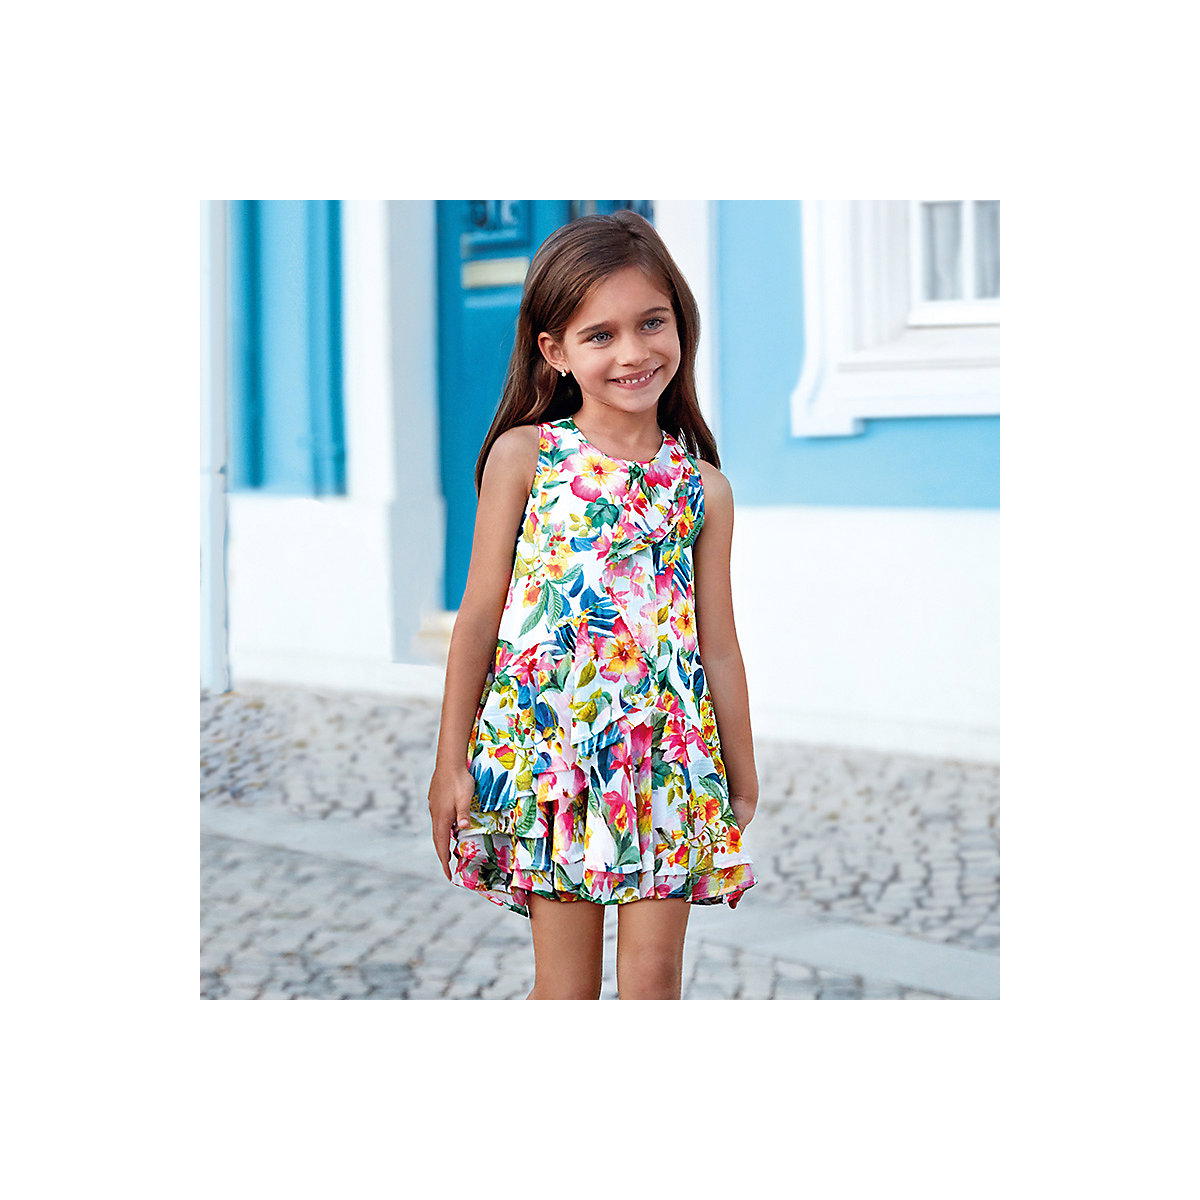 Dresses Mayoral 10686861 Casual dress with short sleeves sundress for girls buenos ninos retro style baroque printing large size loose sleeves positioning flower dress